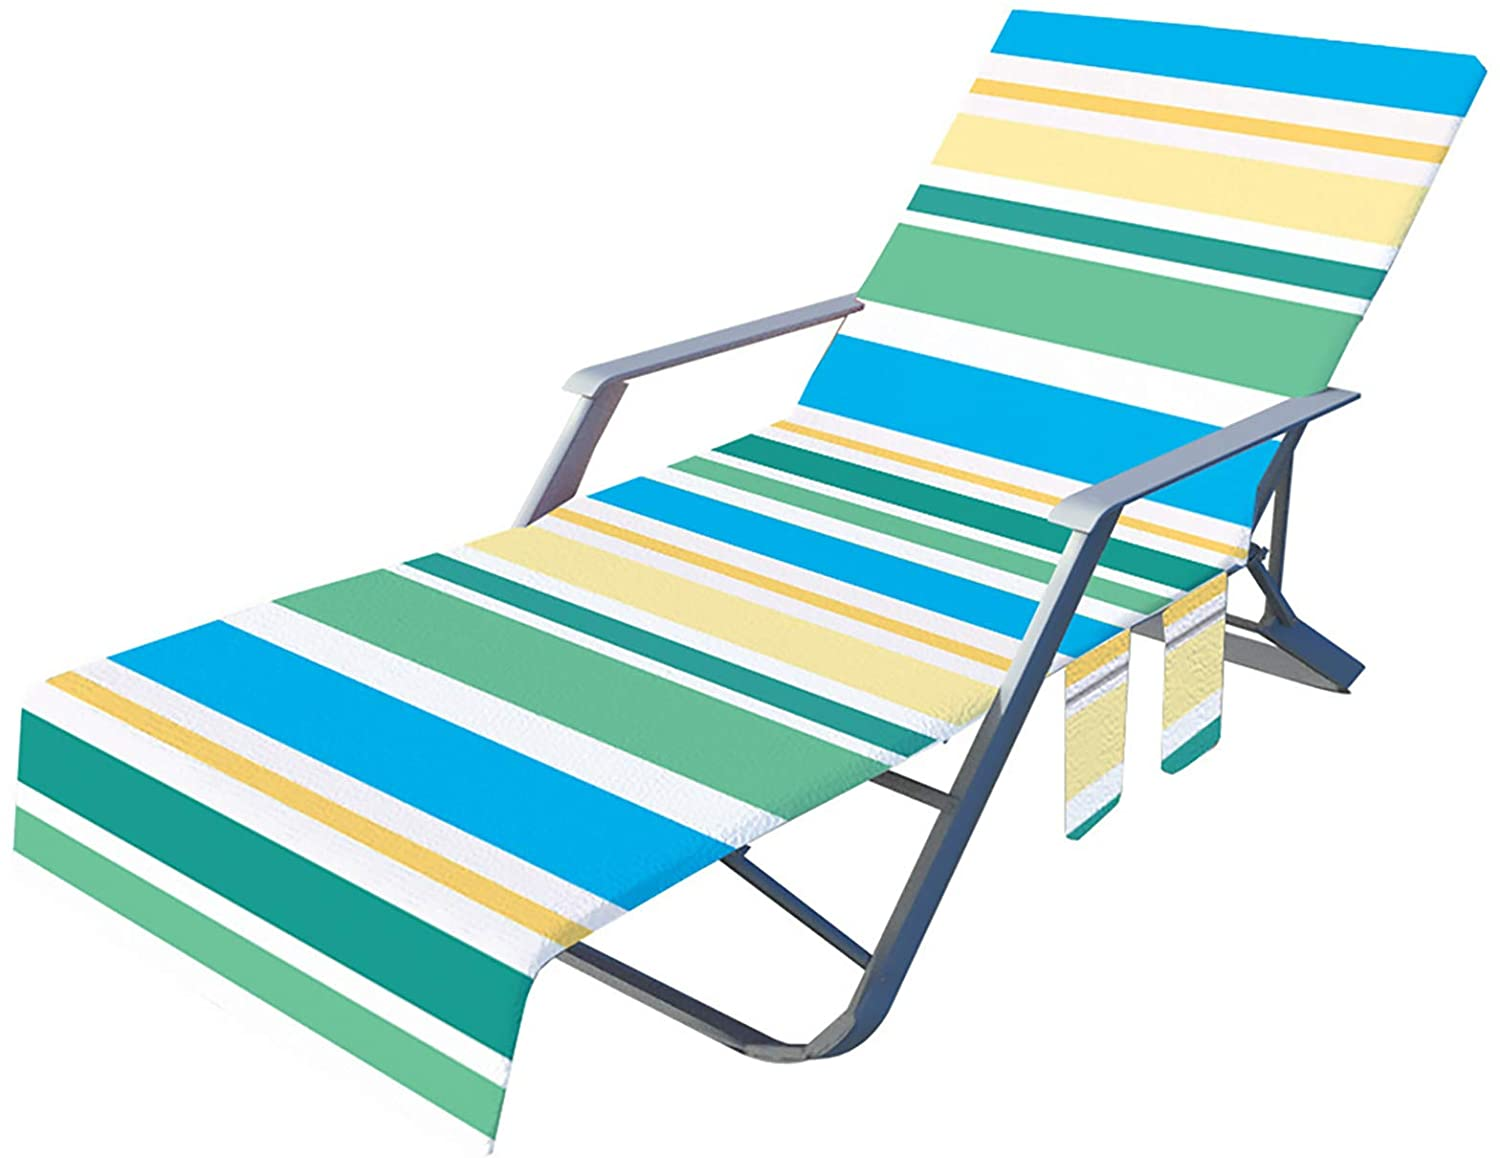 KEXLE BEACH CHAIR COVER POOL LOUNGE CHAISE TOWEL COVER LOUNGE CHAIR COVER SIDE POCKET FAST DRYING COVER FOR POOL HOTEL VACATION SUNBATHING EASY TO CARRY